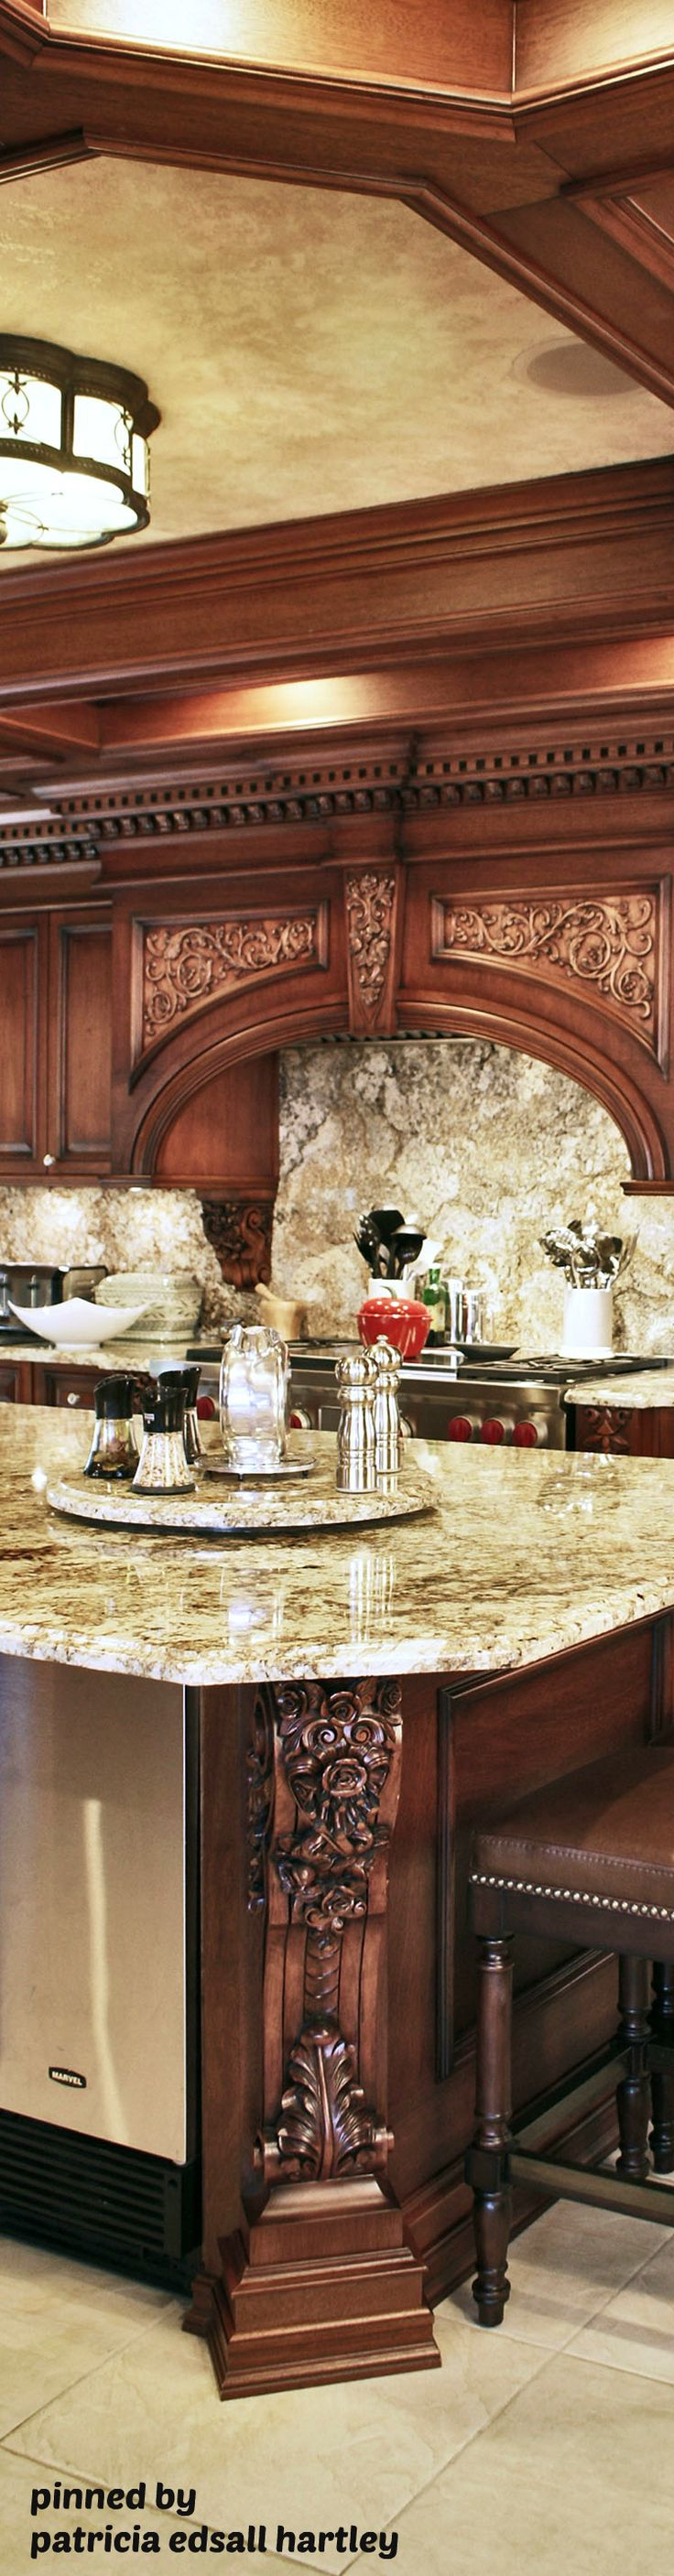 best 25 tuscan kitchens ideas on pinterest tuscan decor mediterranean tuscan old world decor